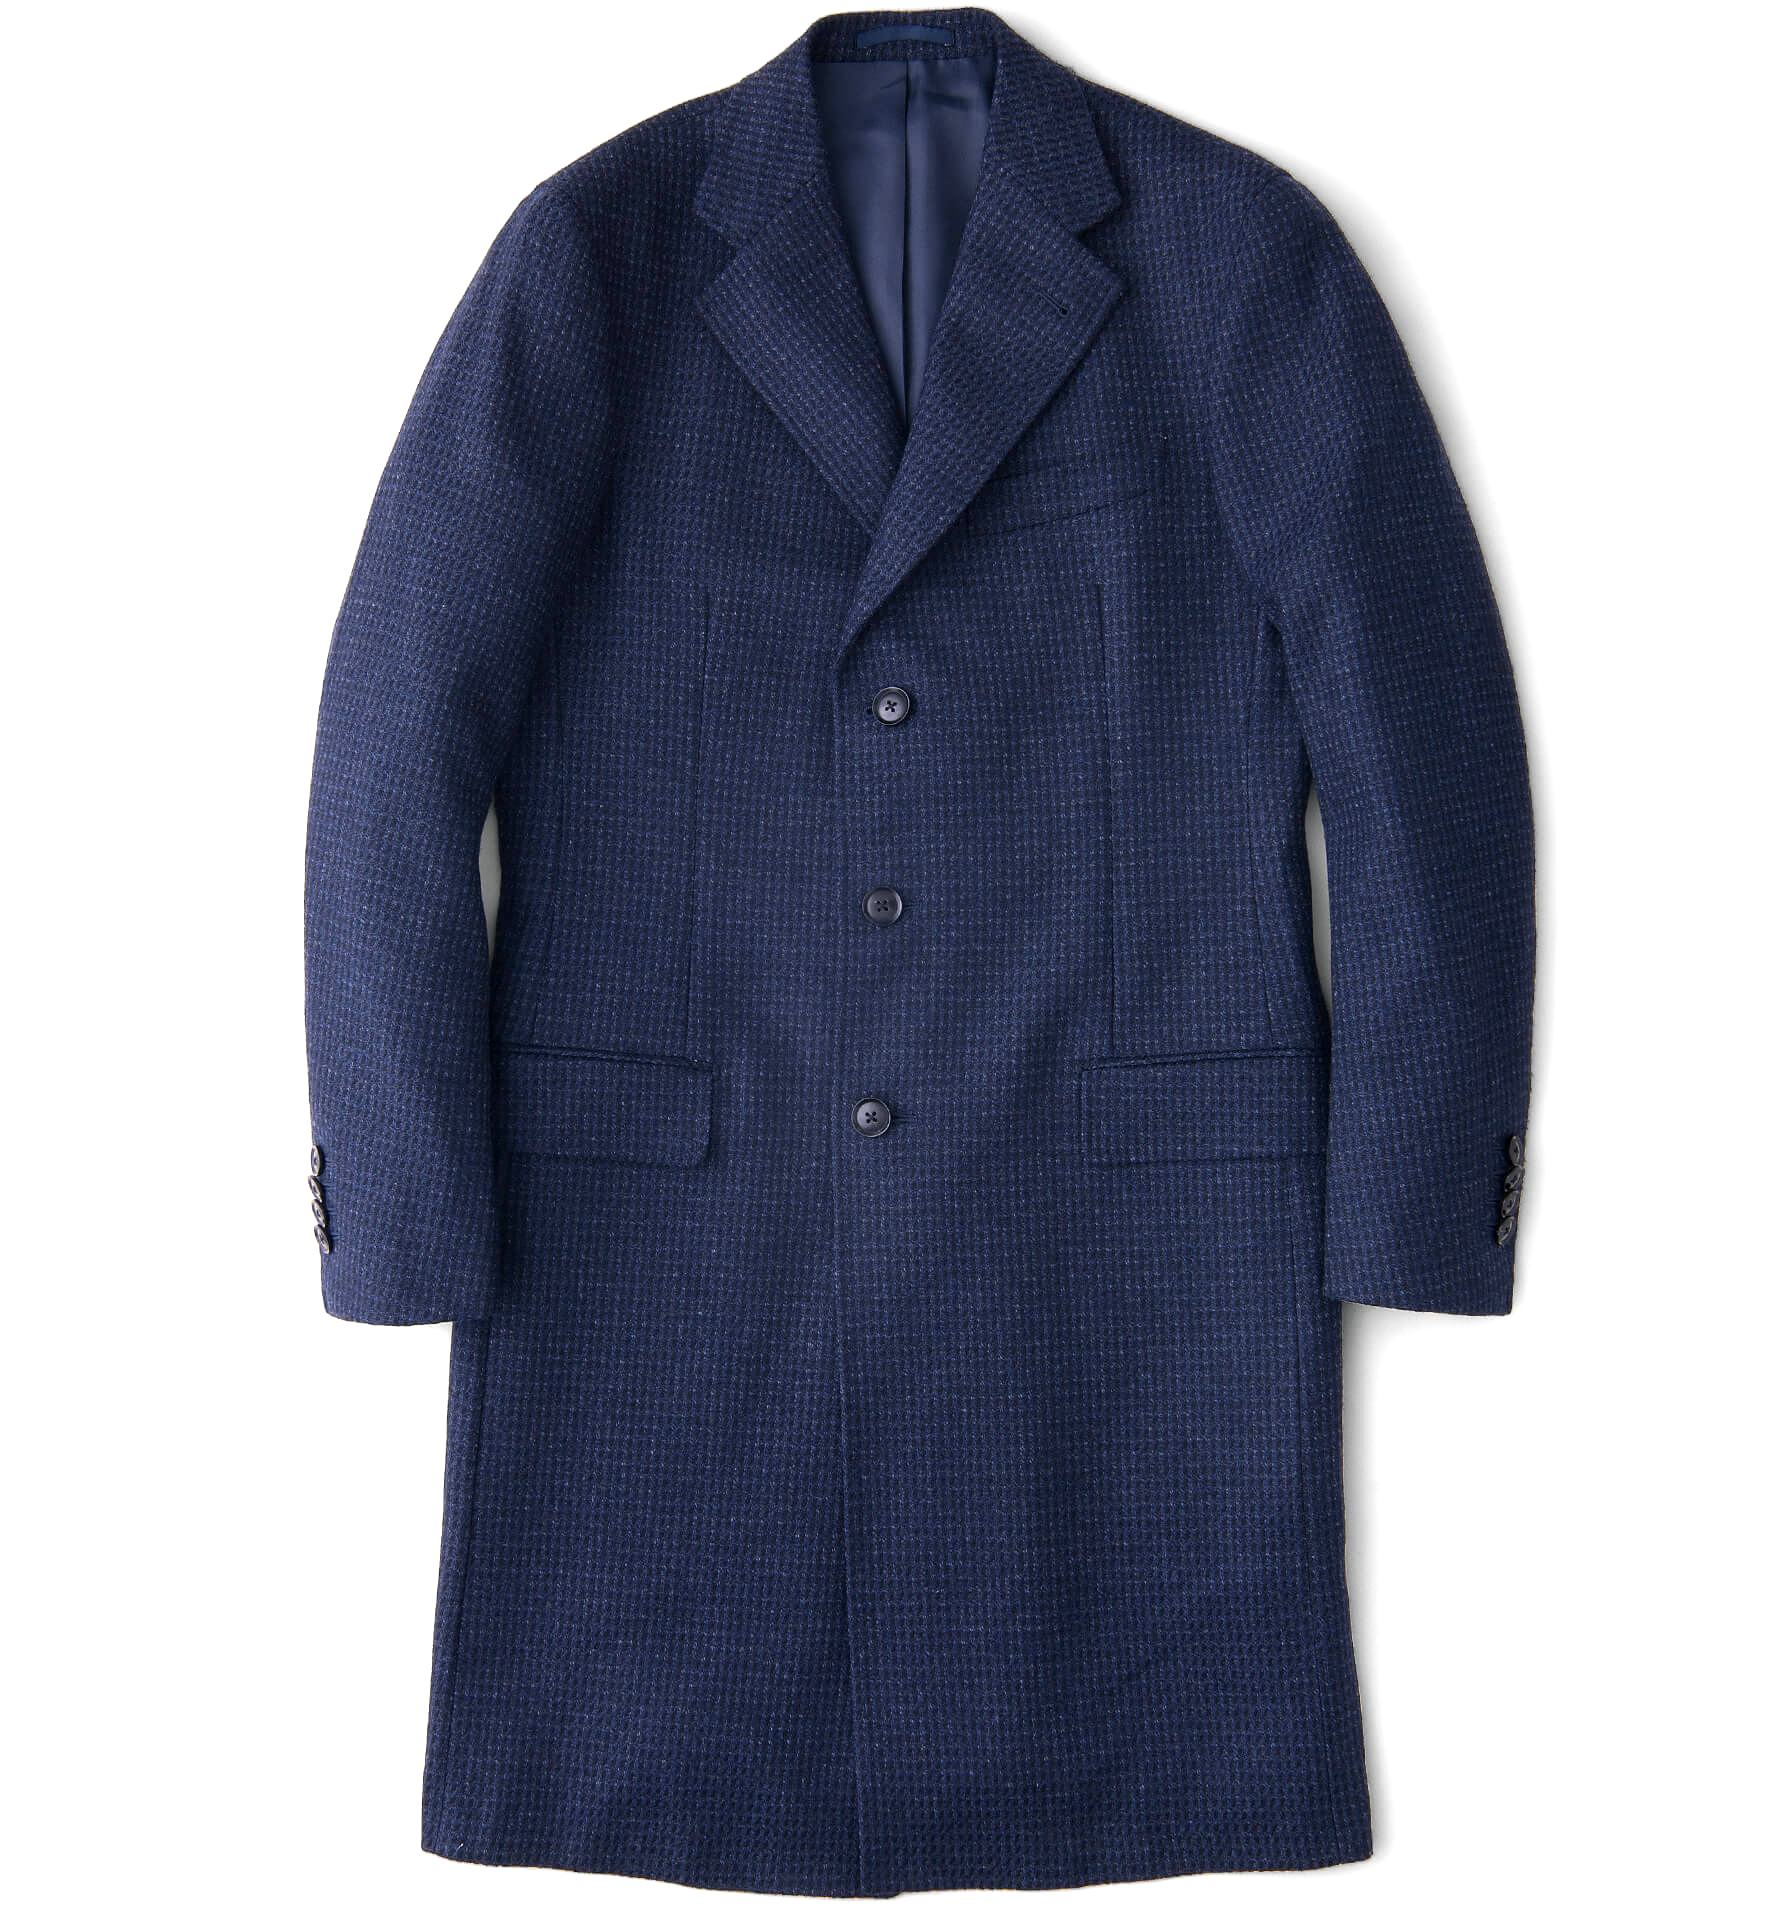 Zoom Image of Bleecker Navy Wool and Cashmere Coat